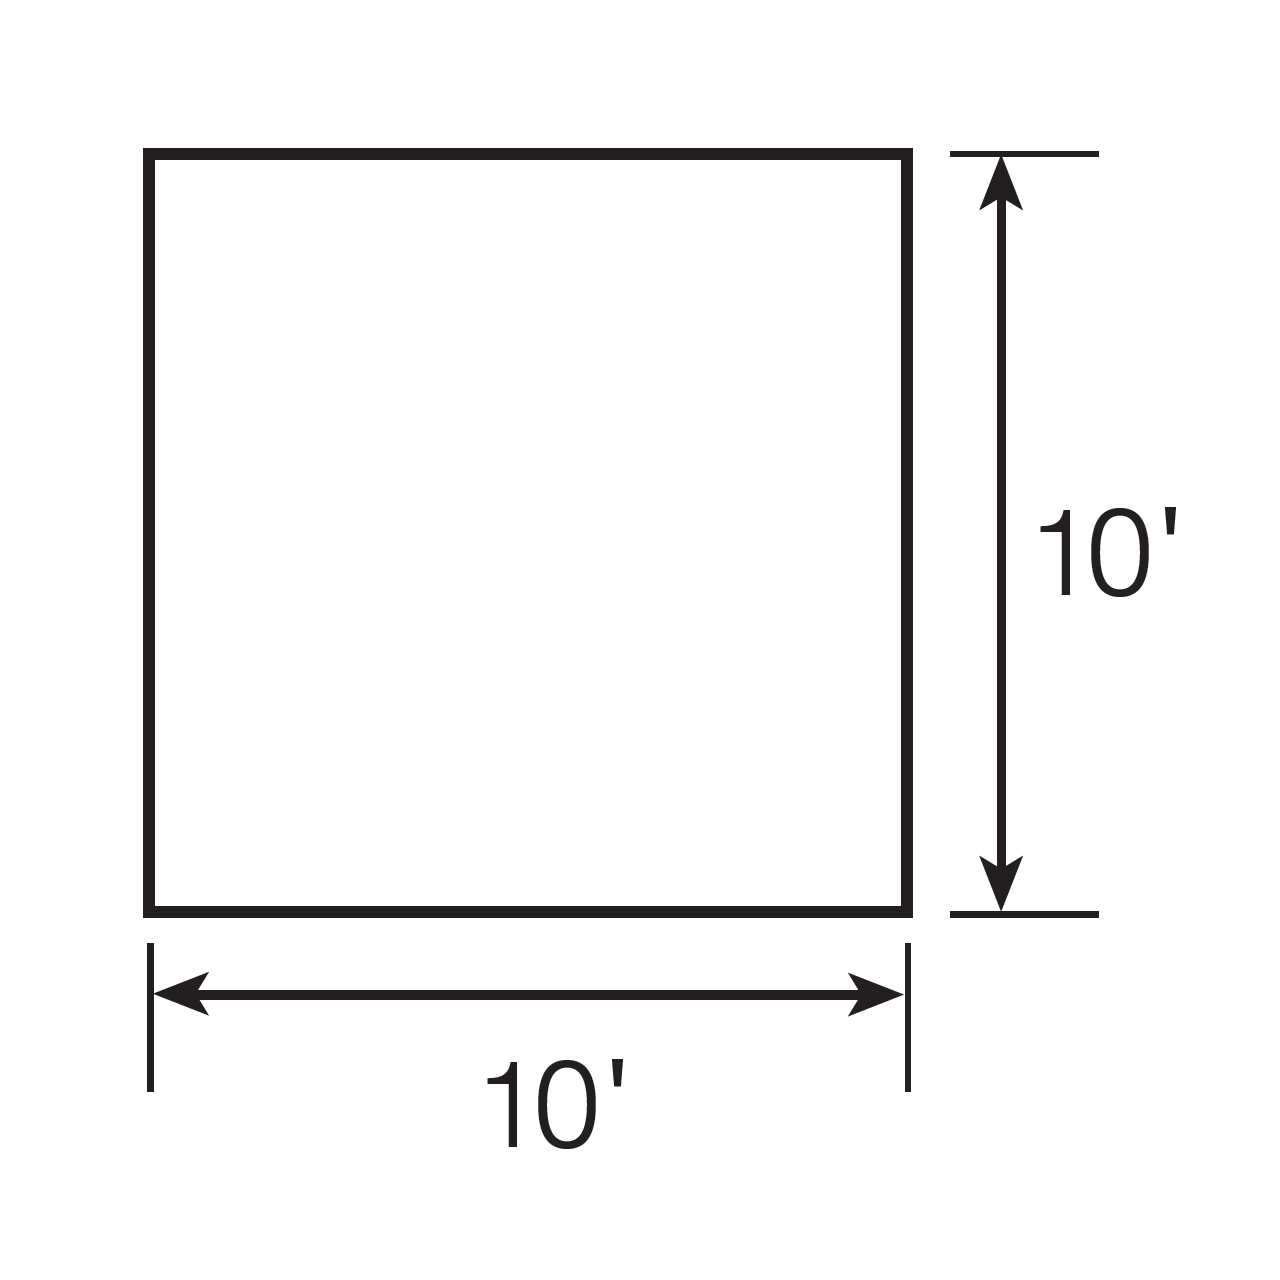 Floor plan of the Wenzel Smartshade Screen House using a diagram to illustrate the dimensions